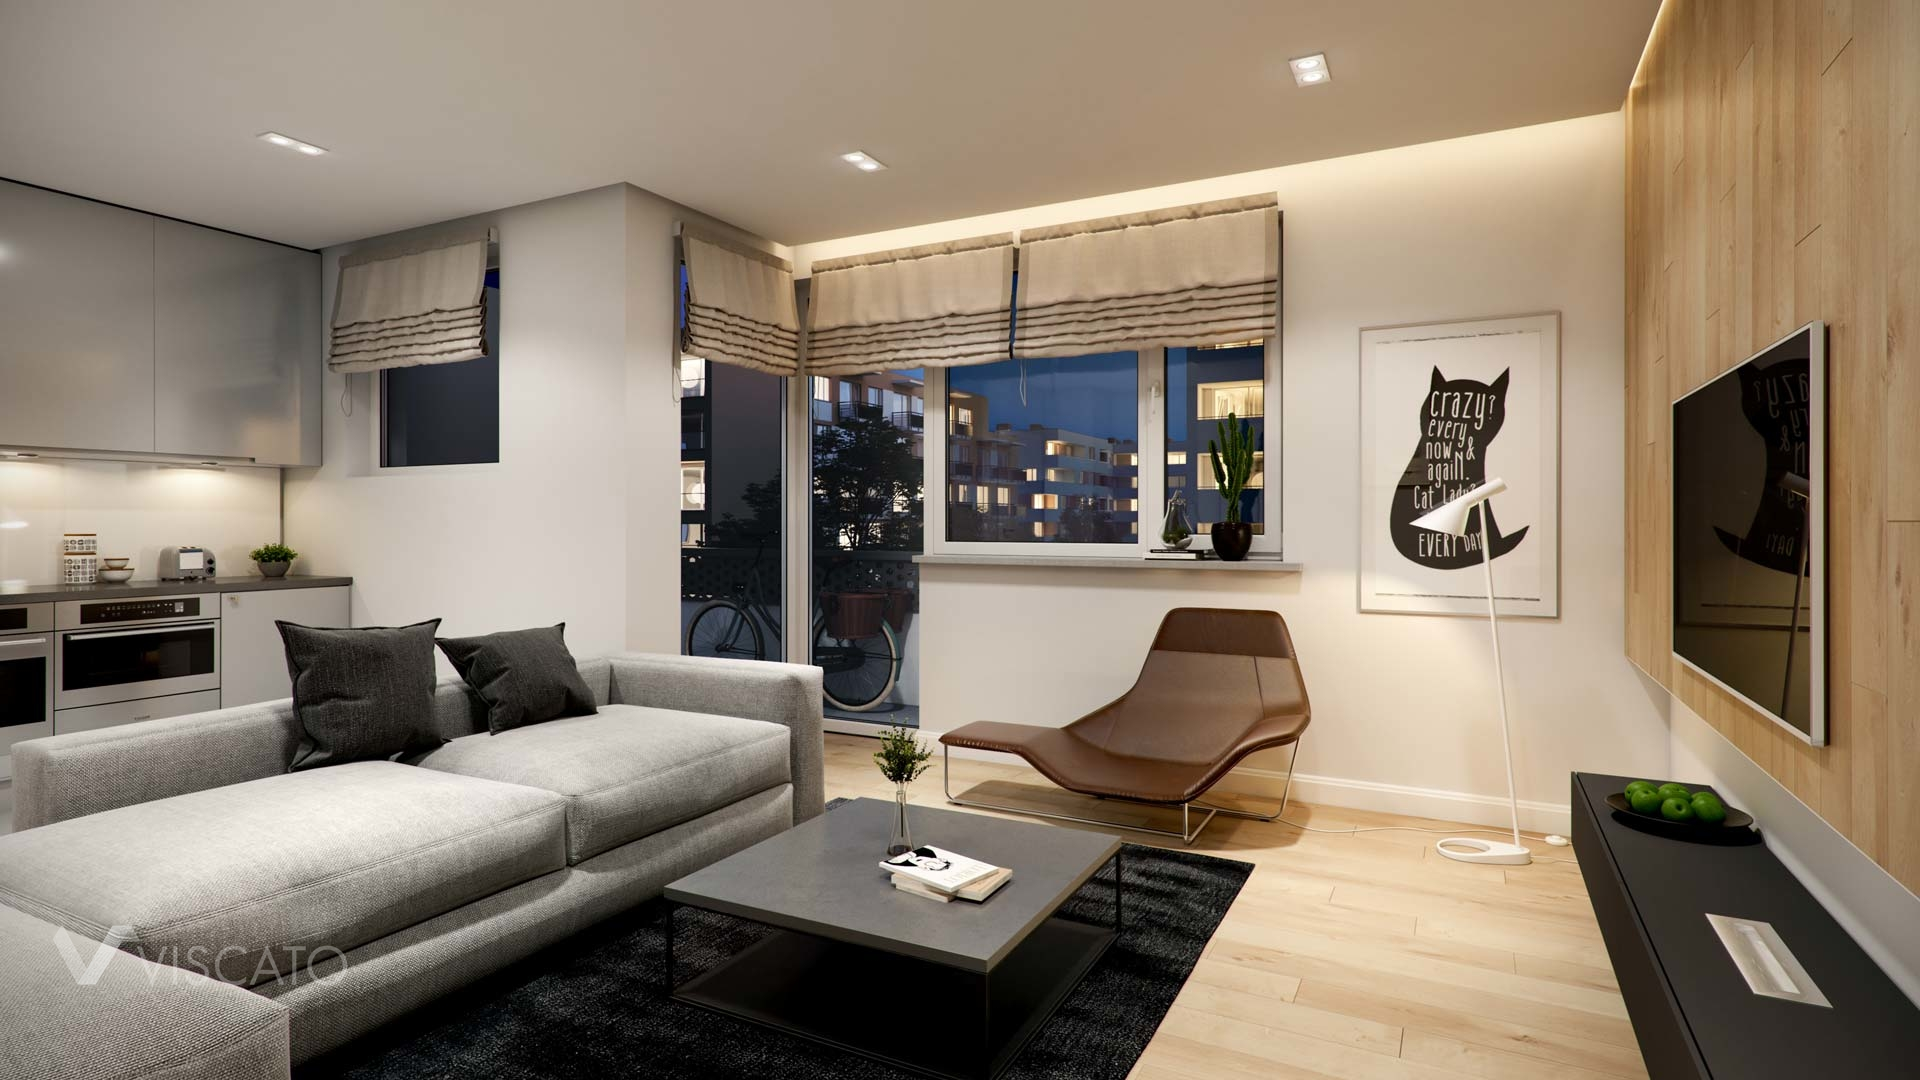 3D illustration of modern living room at night time Viscato